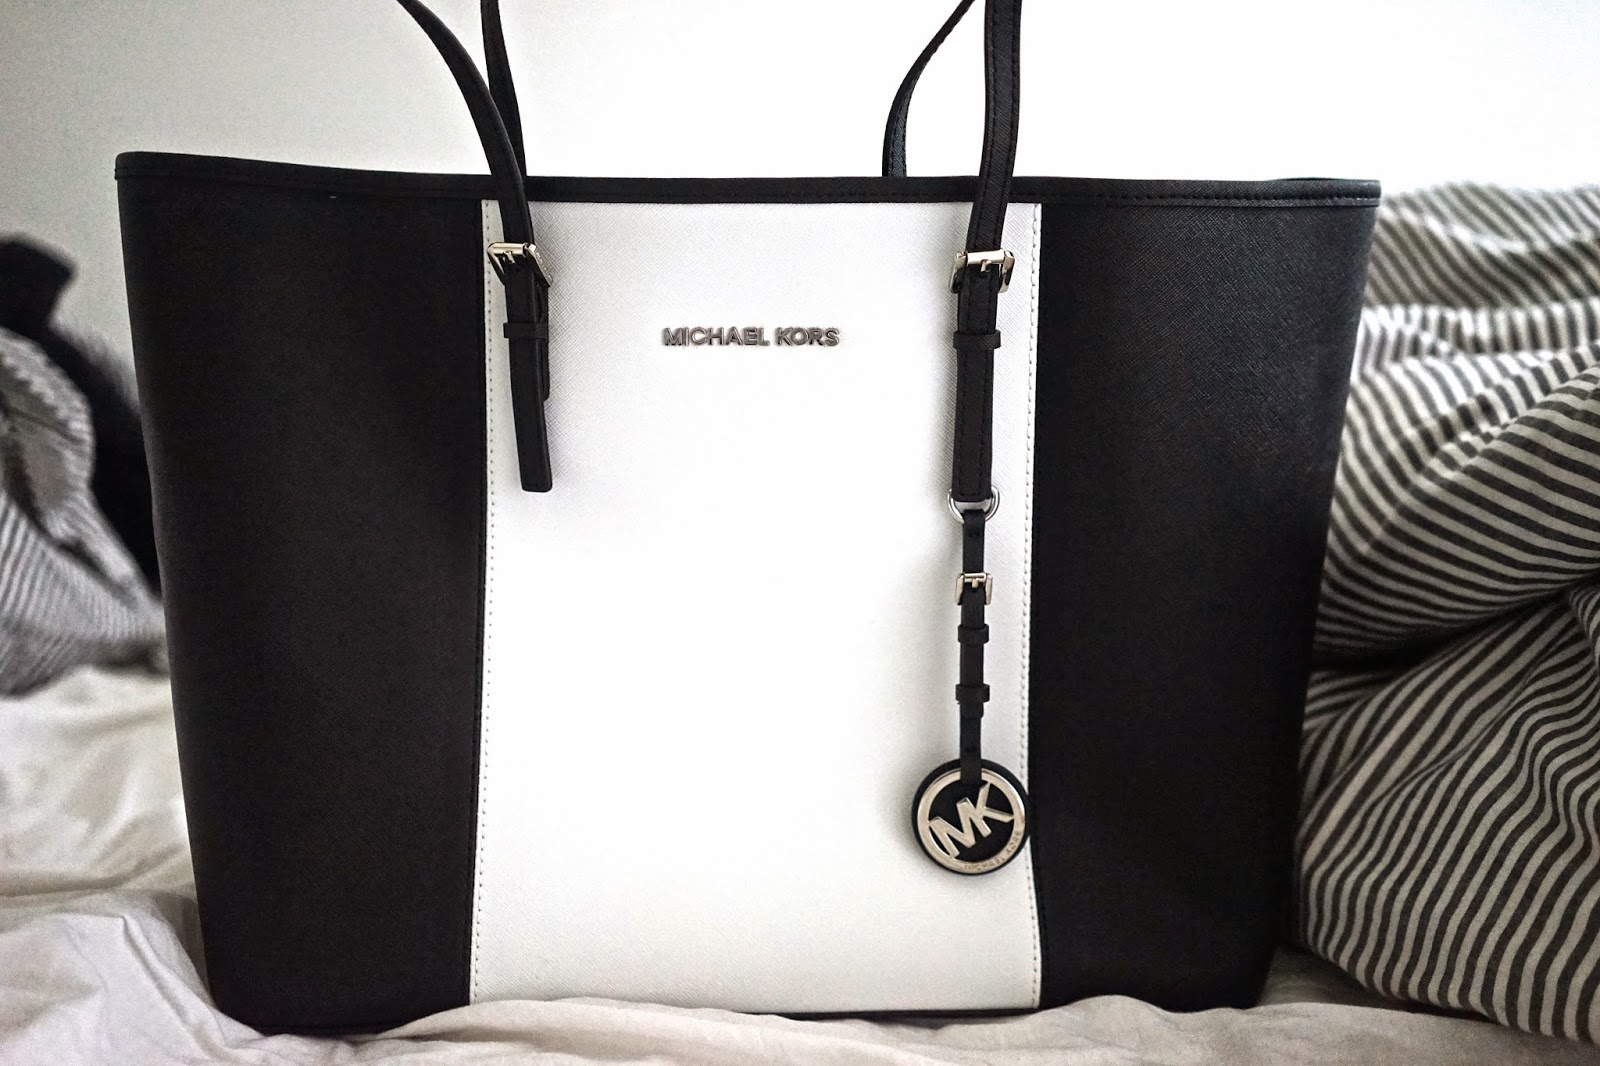 Michael Kors black and white handbag